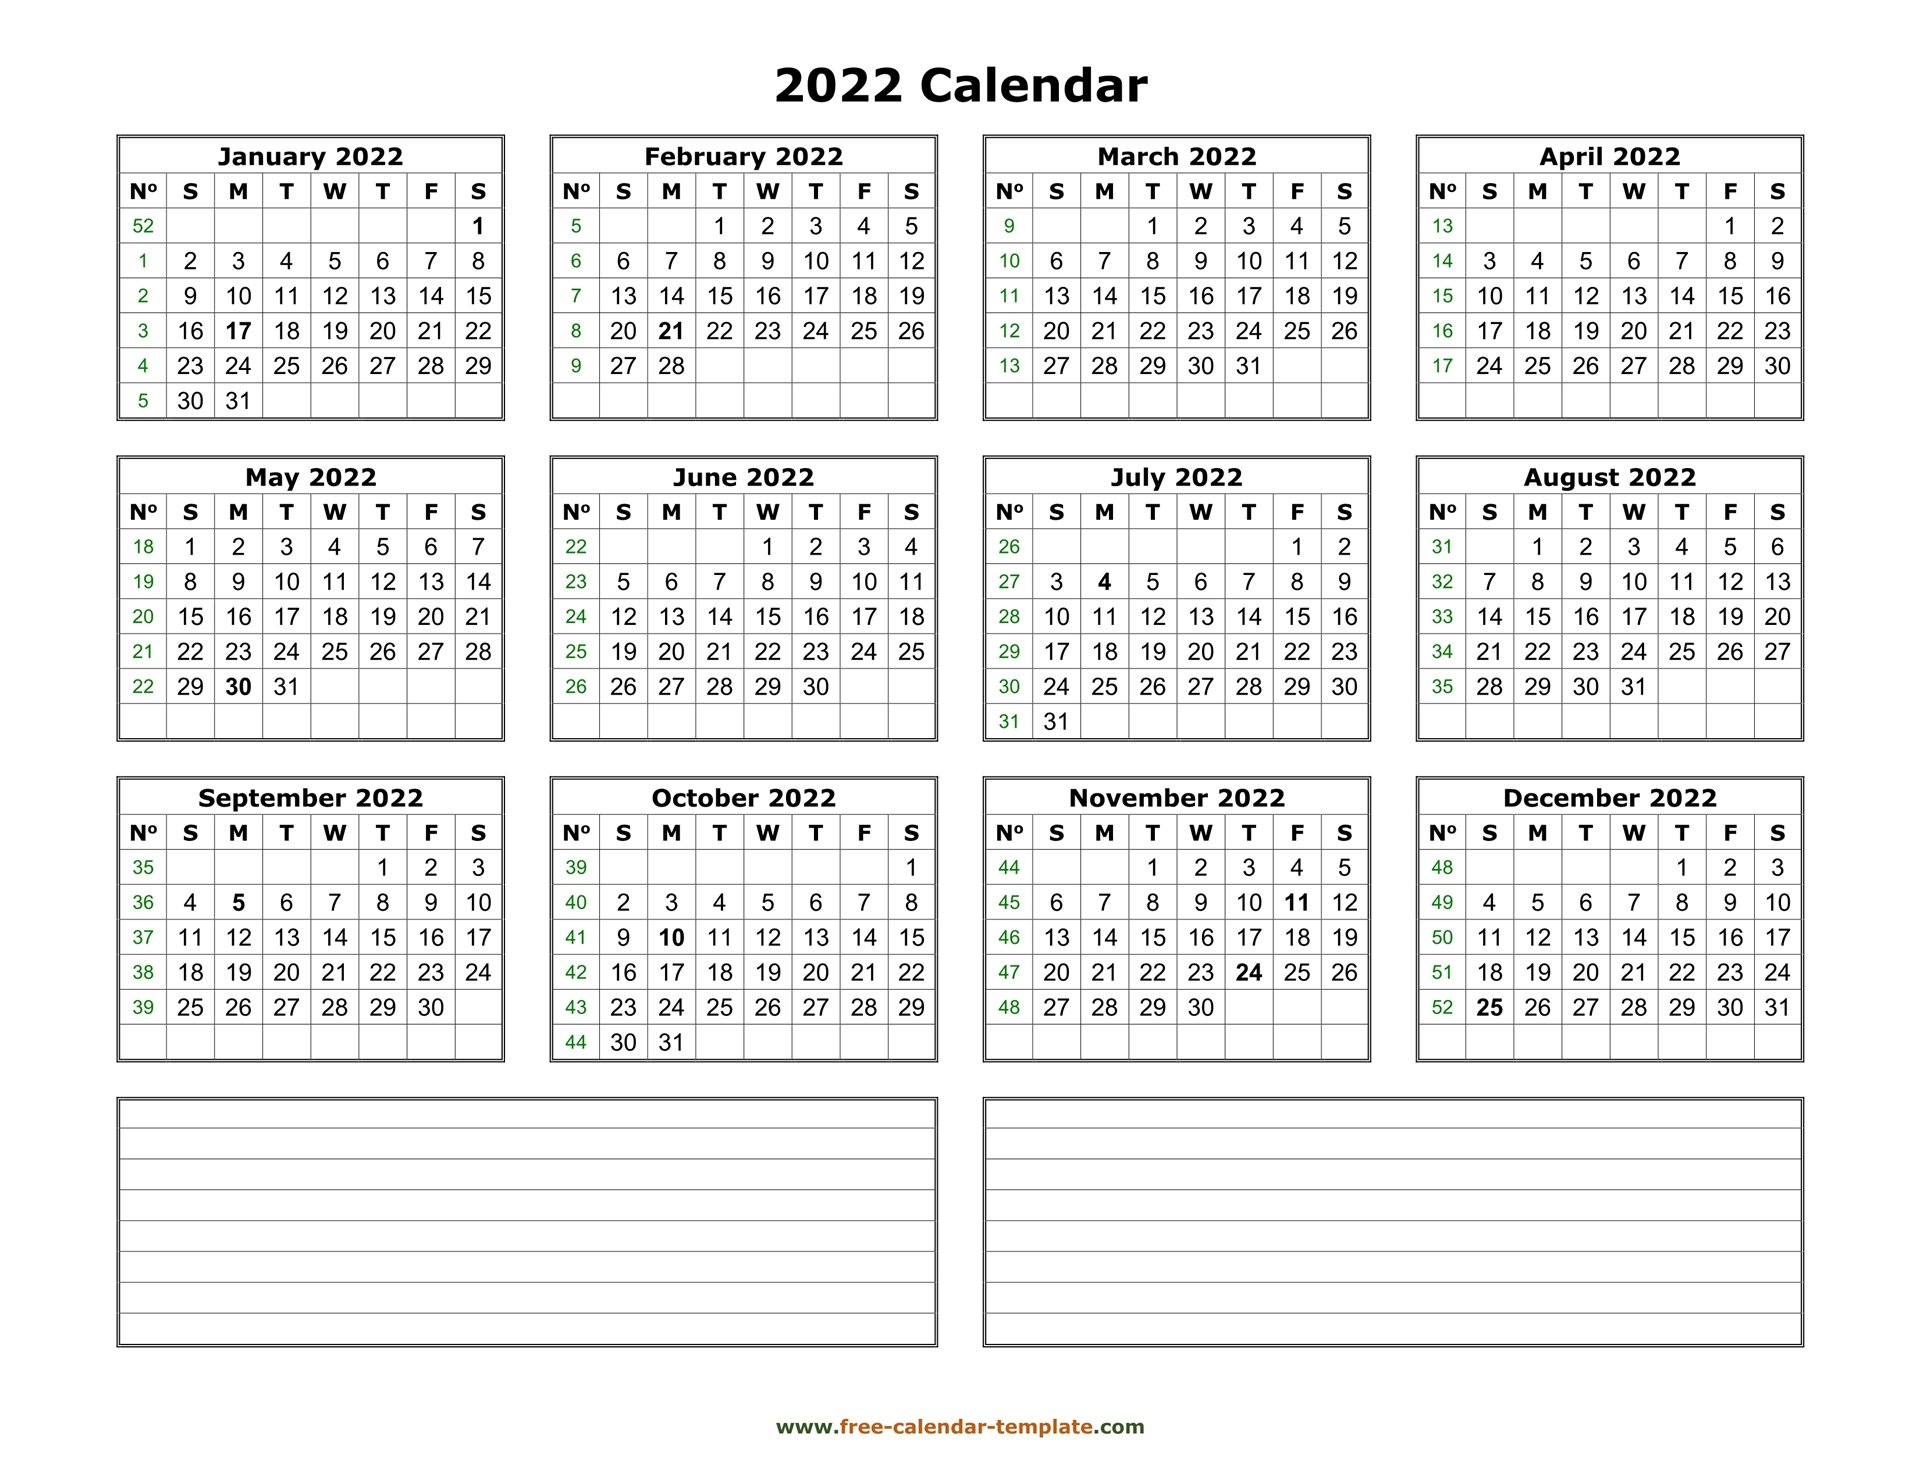 Printable Yearly Calendar 2022 | Free-Calendar-Template with regard to Yearly Planner 2022 Printable Free